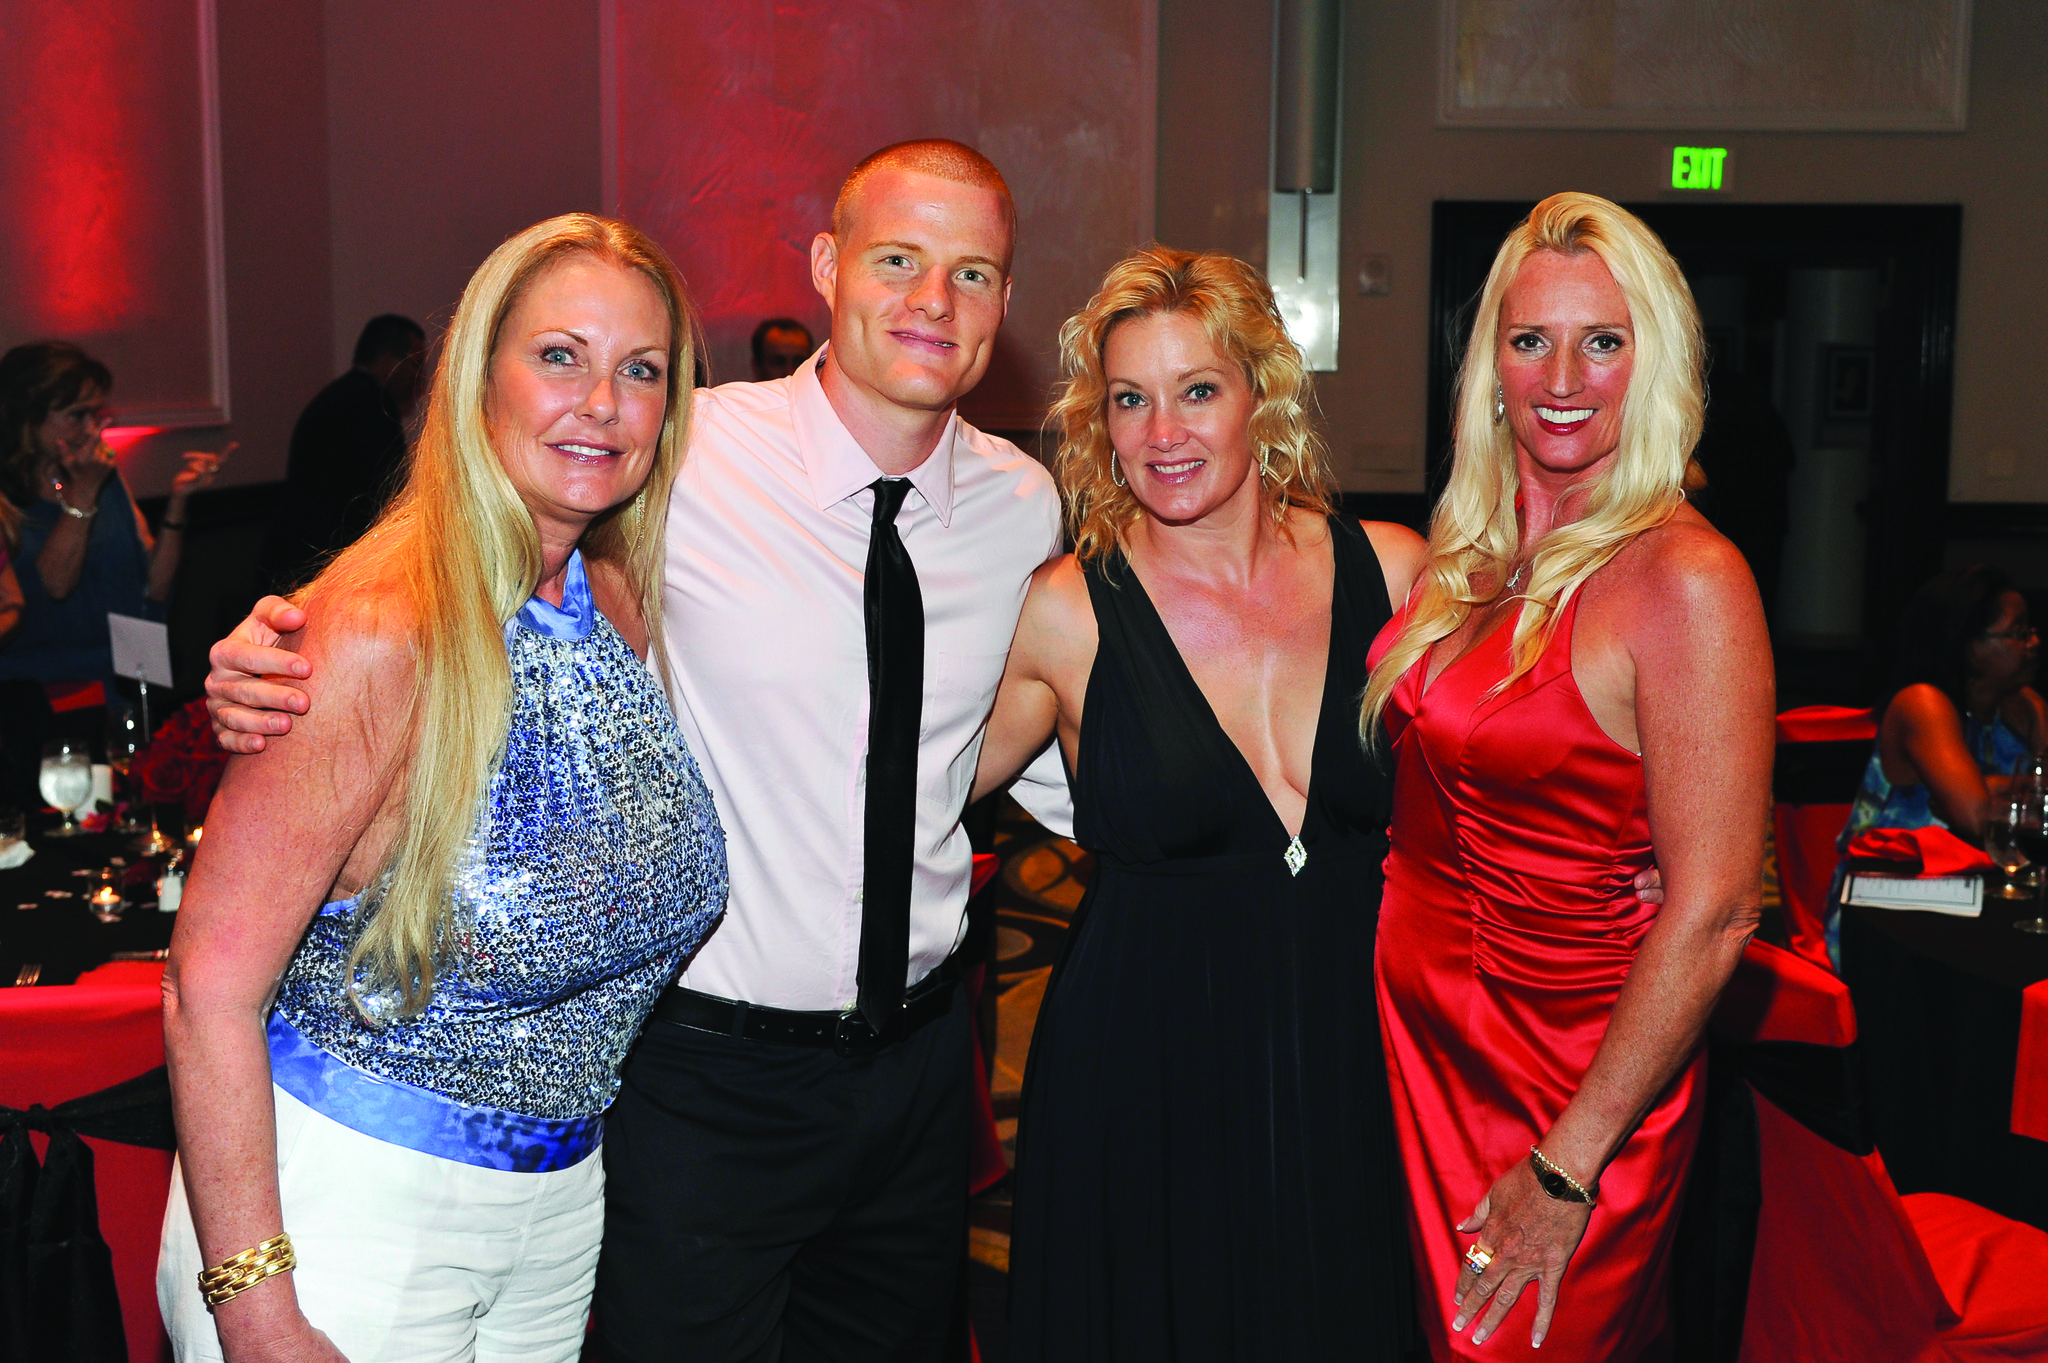 """Society Scene photos - Teresa Orr, left, Nick Murtha, Dr. Lisa Learn and Laurina Anderson attended the third annual """"Hypoglycemia Takes Center Stage Gala: Casino Royale,"""" which took place at the Hyatt Regency Pier Sixty-Six."""